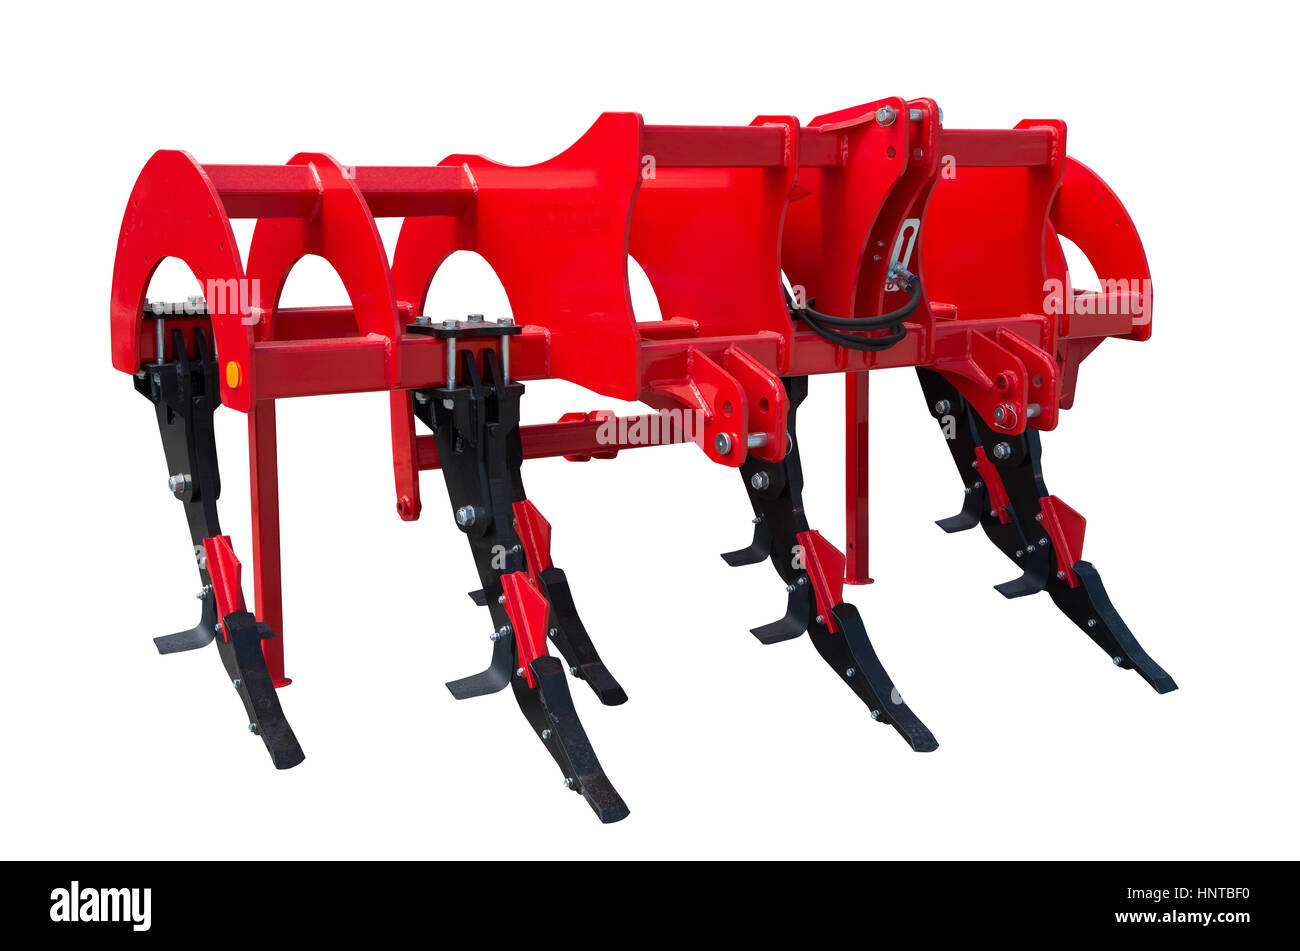 Subsoiler or flat lifter is a tractor mounted farm implement. - Stock Image